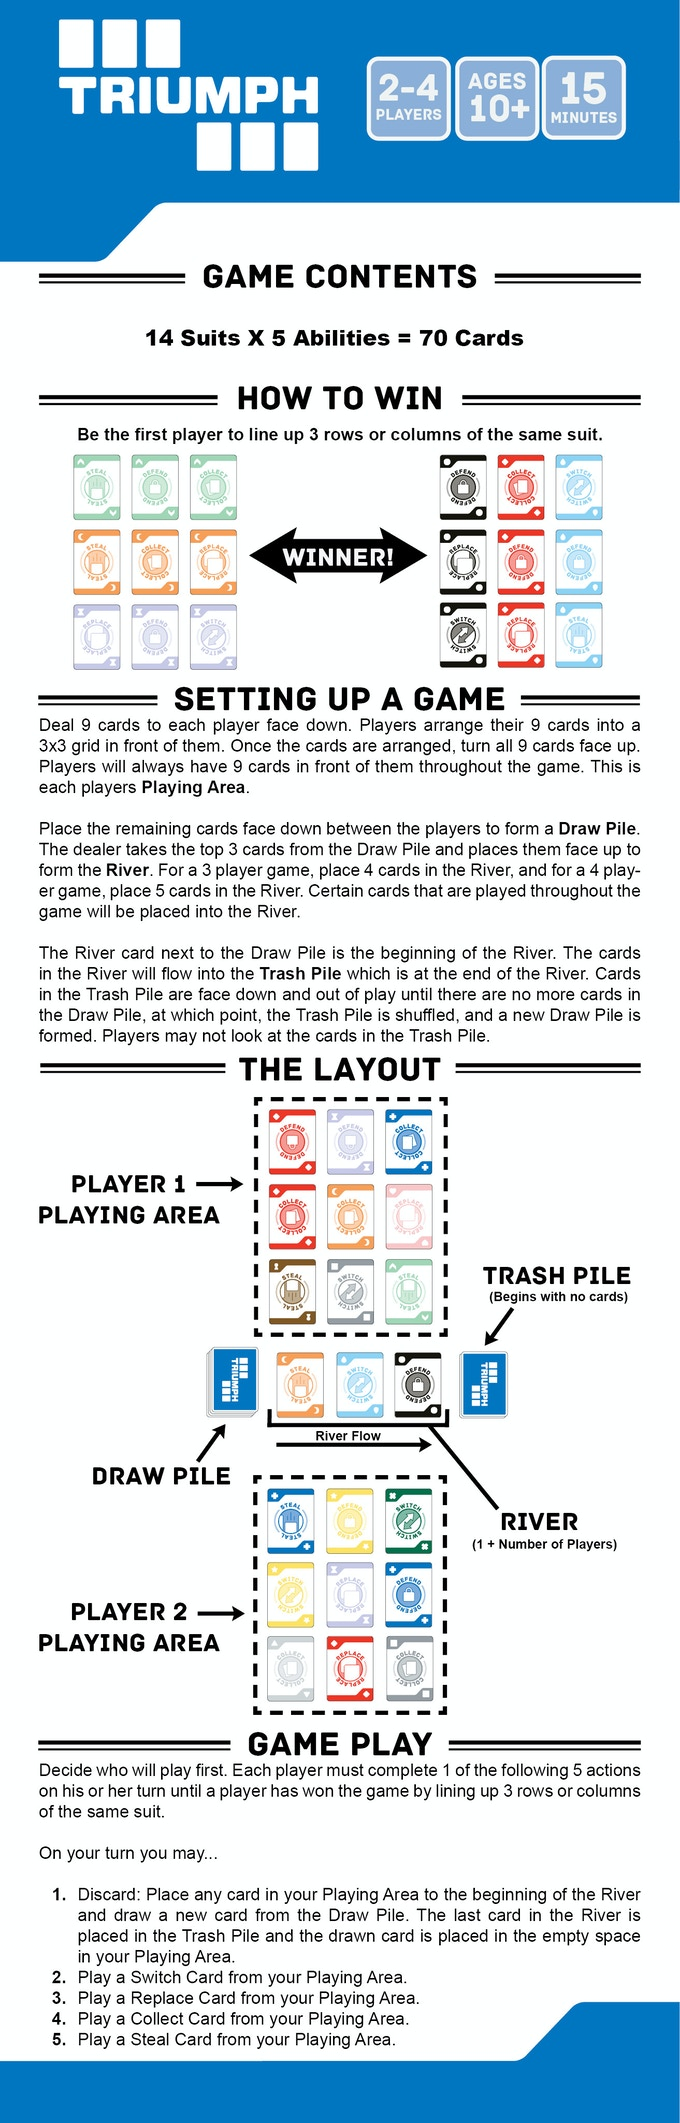 Rules (Page 1)